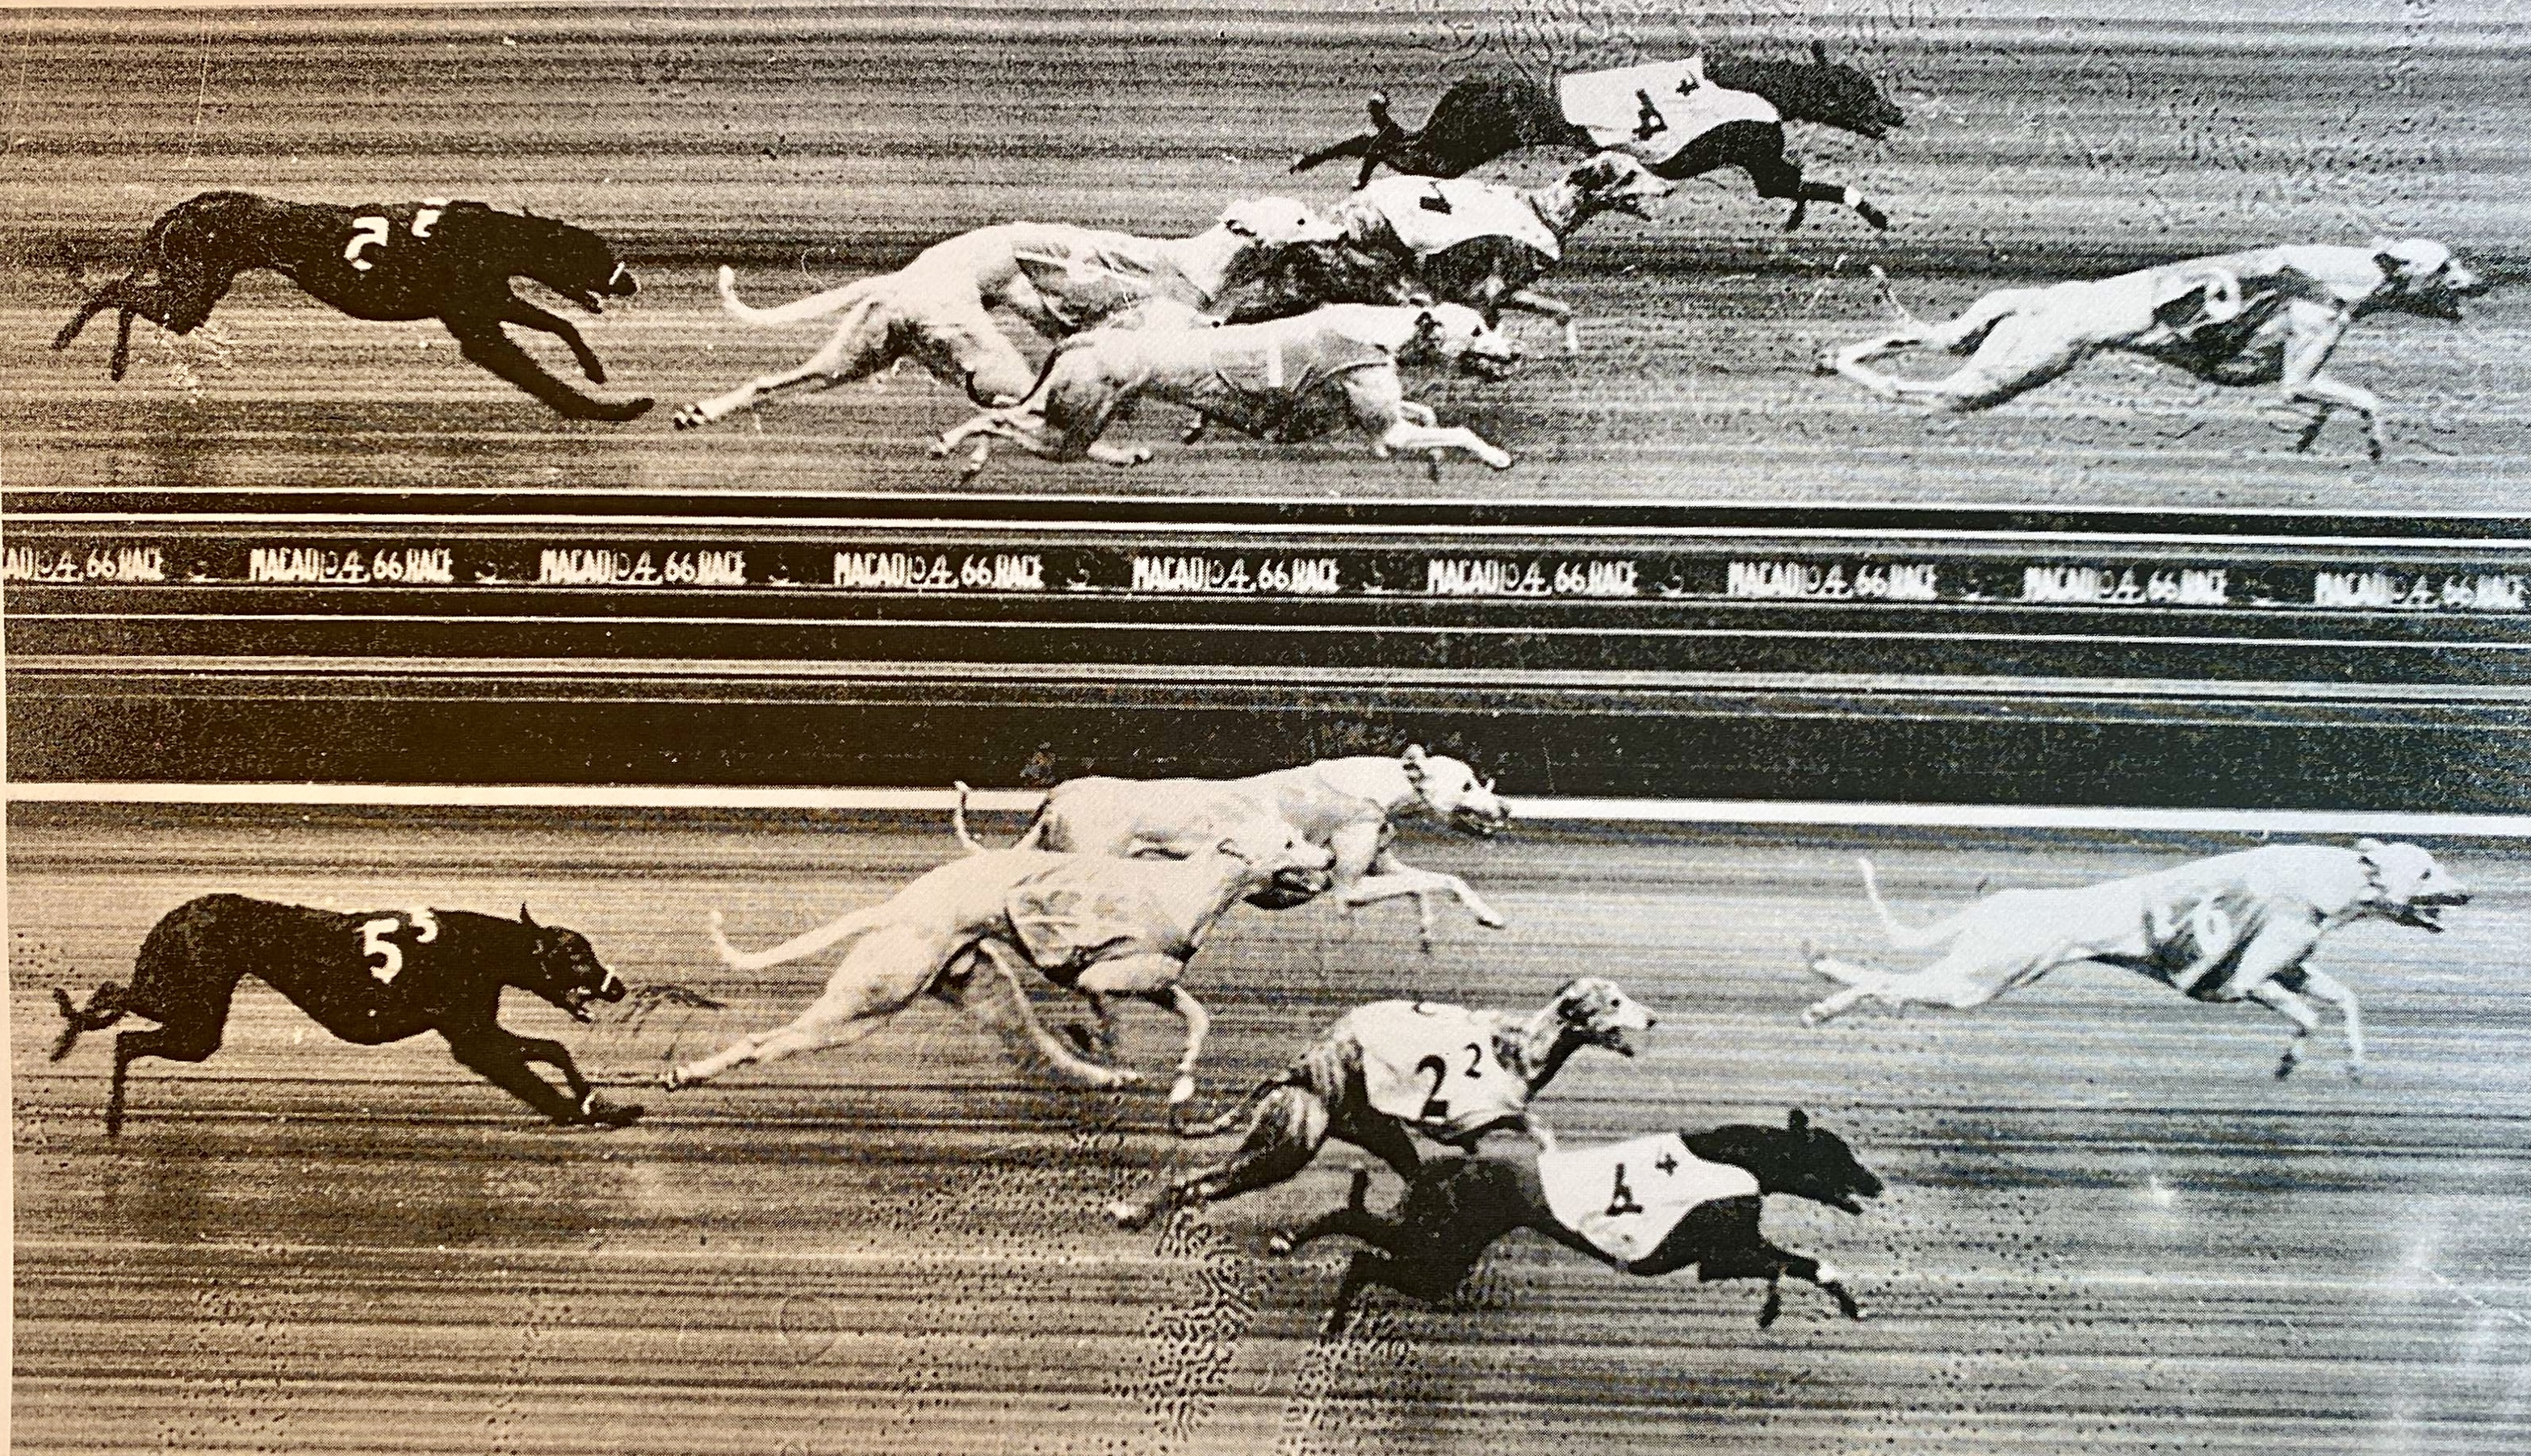 Dogs racing at the Yat Yuen Canidrome